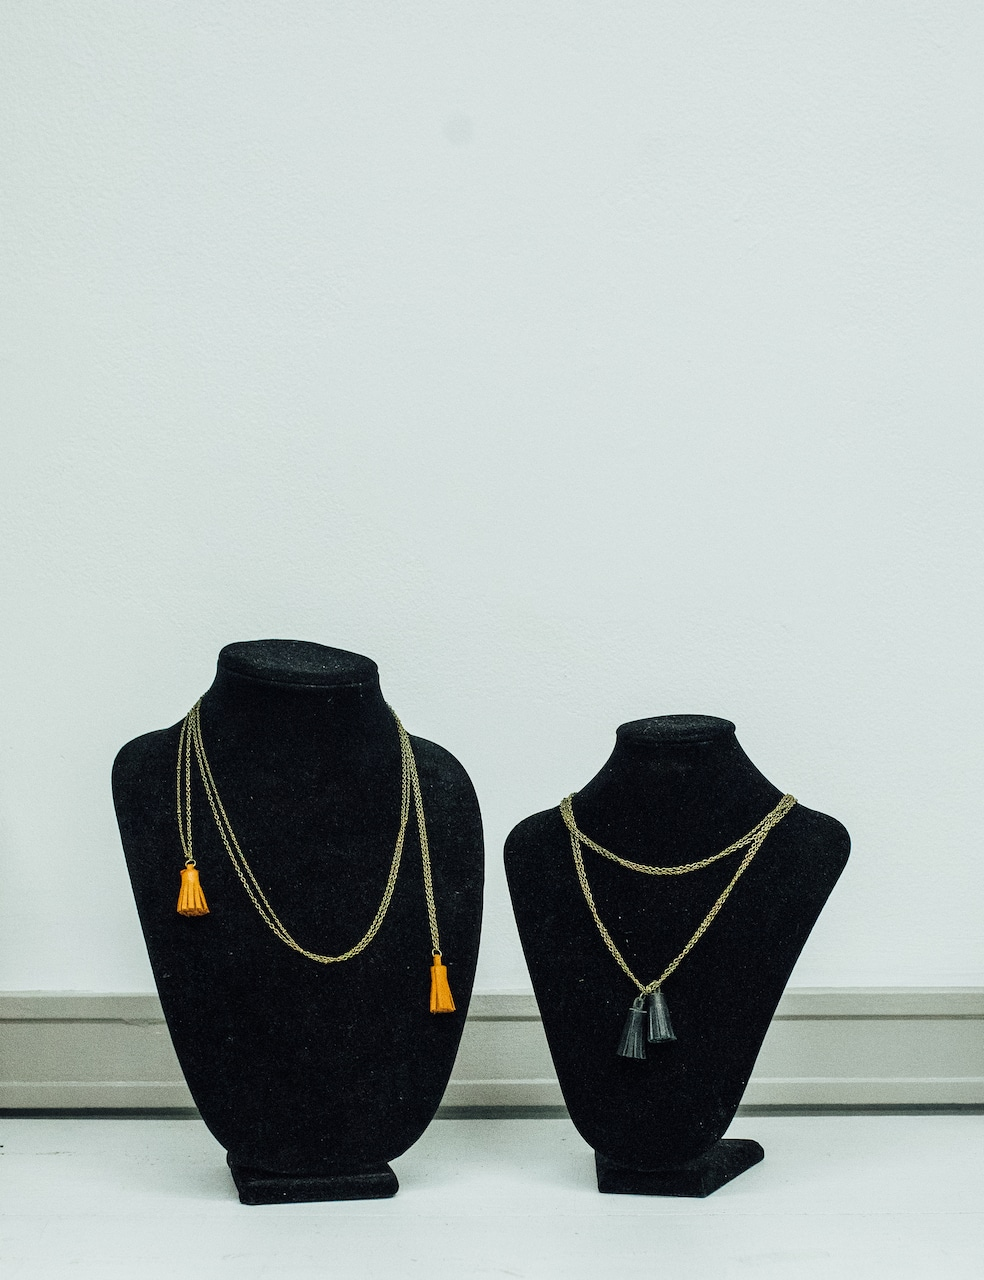 Rooted necklaces